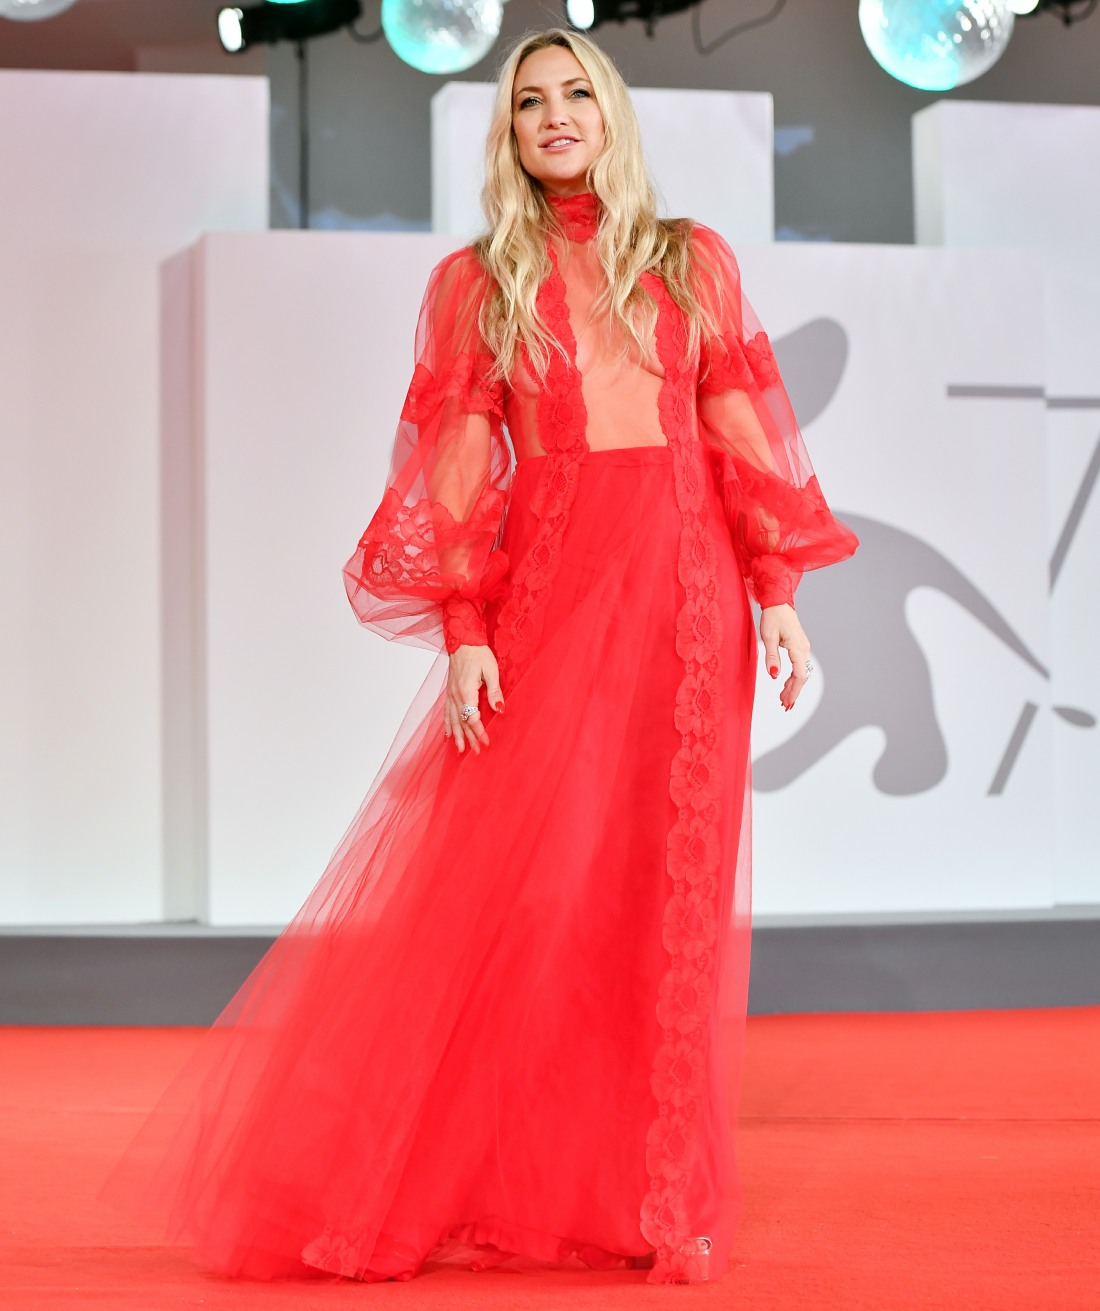 78th Venice Film Festival, Red carpet of film Mona Lisa and the Blood Moon, Venice, Italy